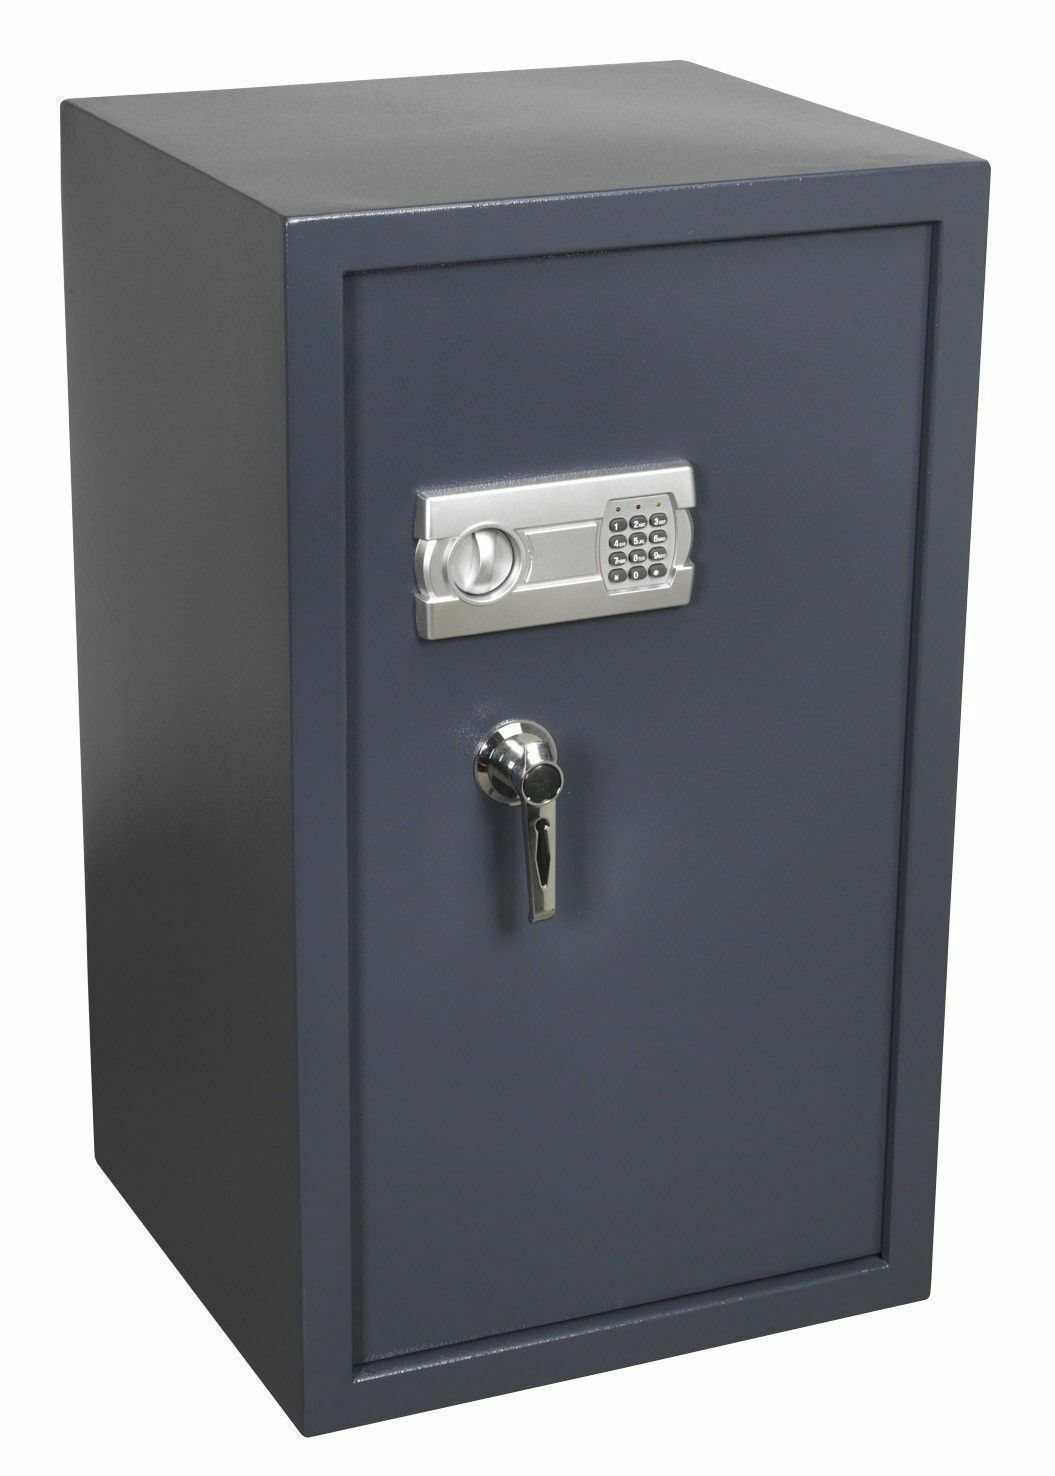 Home Security Safes for sale | eBay